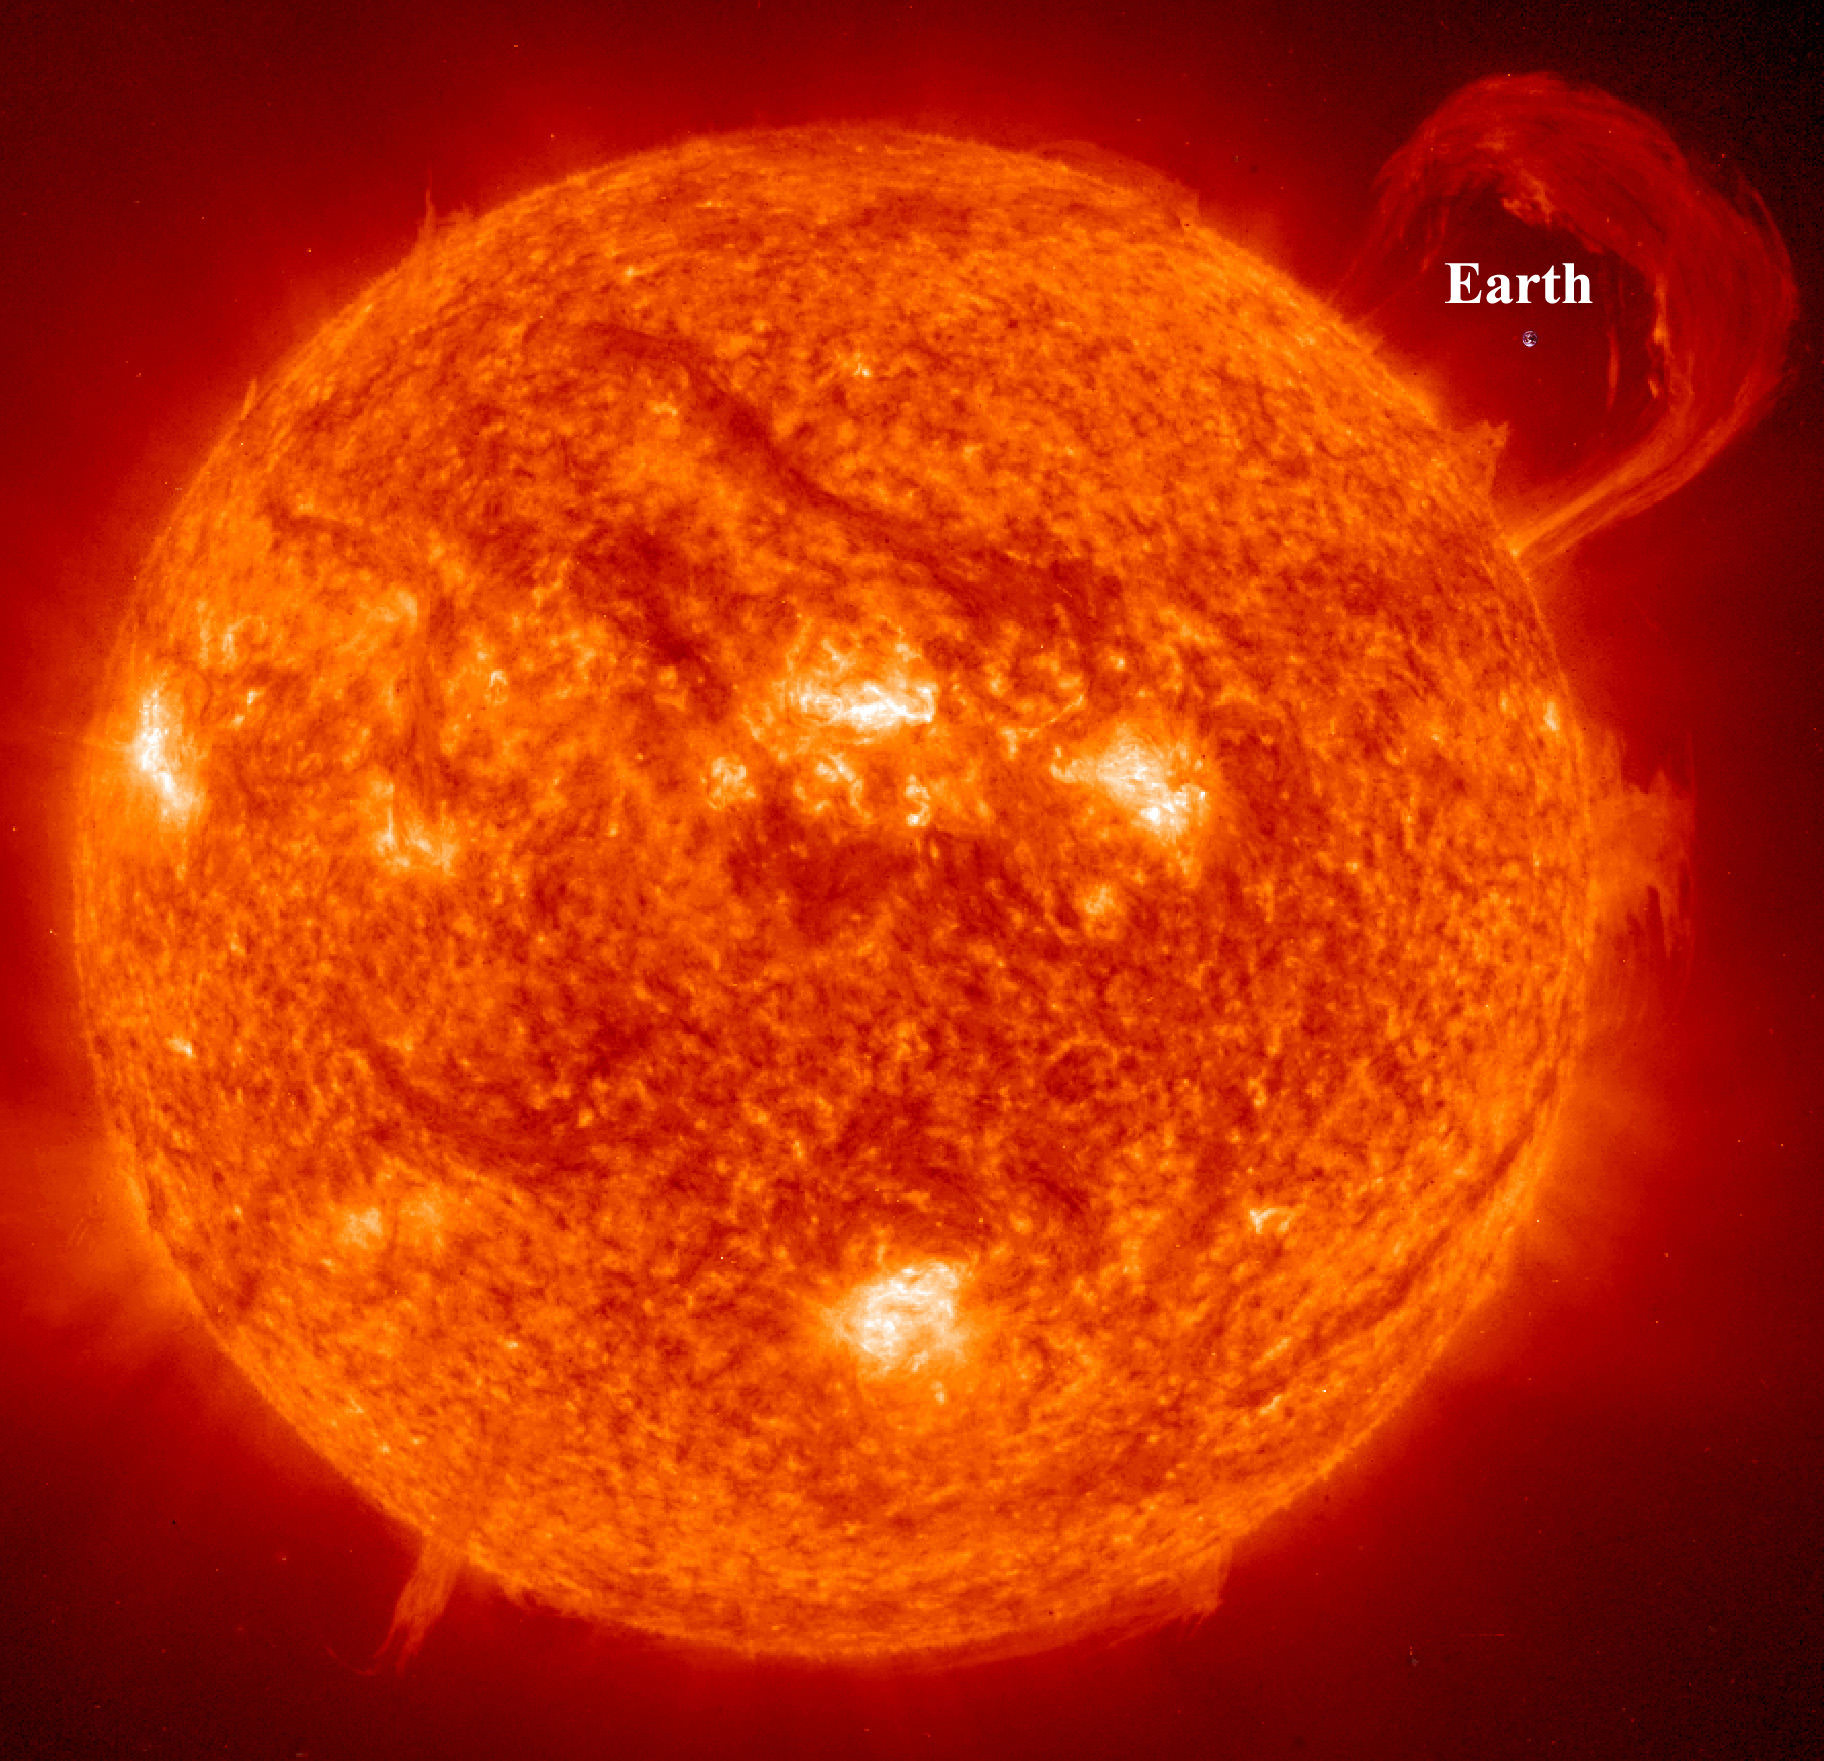 Earth Compared to the Sun. Image credit: NASA